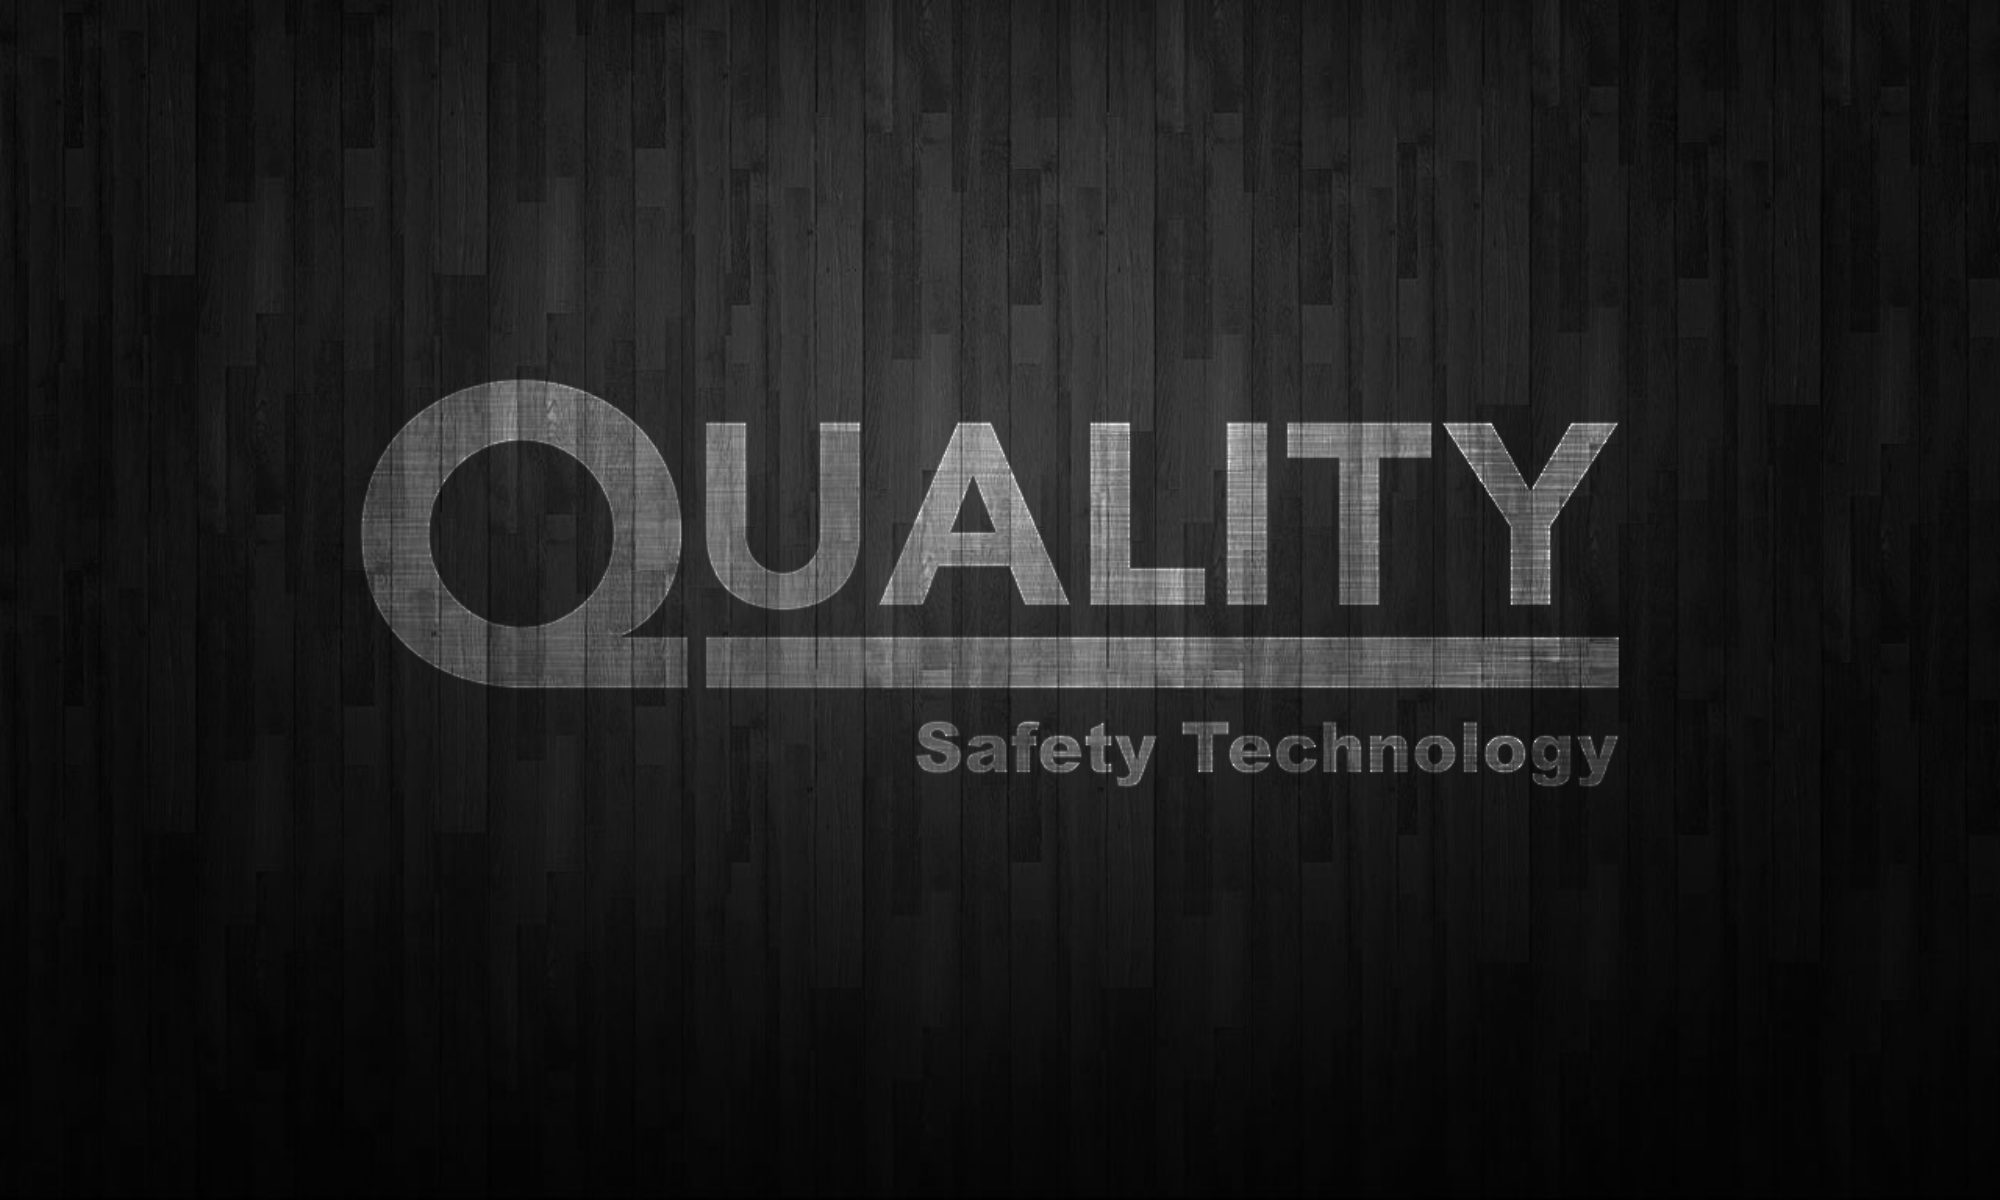 Quality safety technology